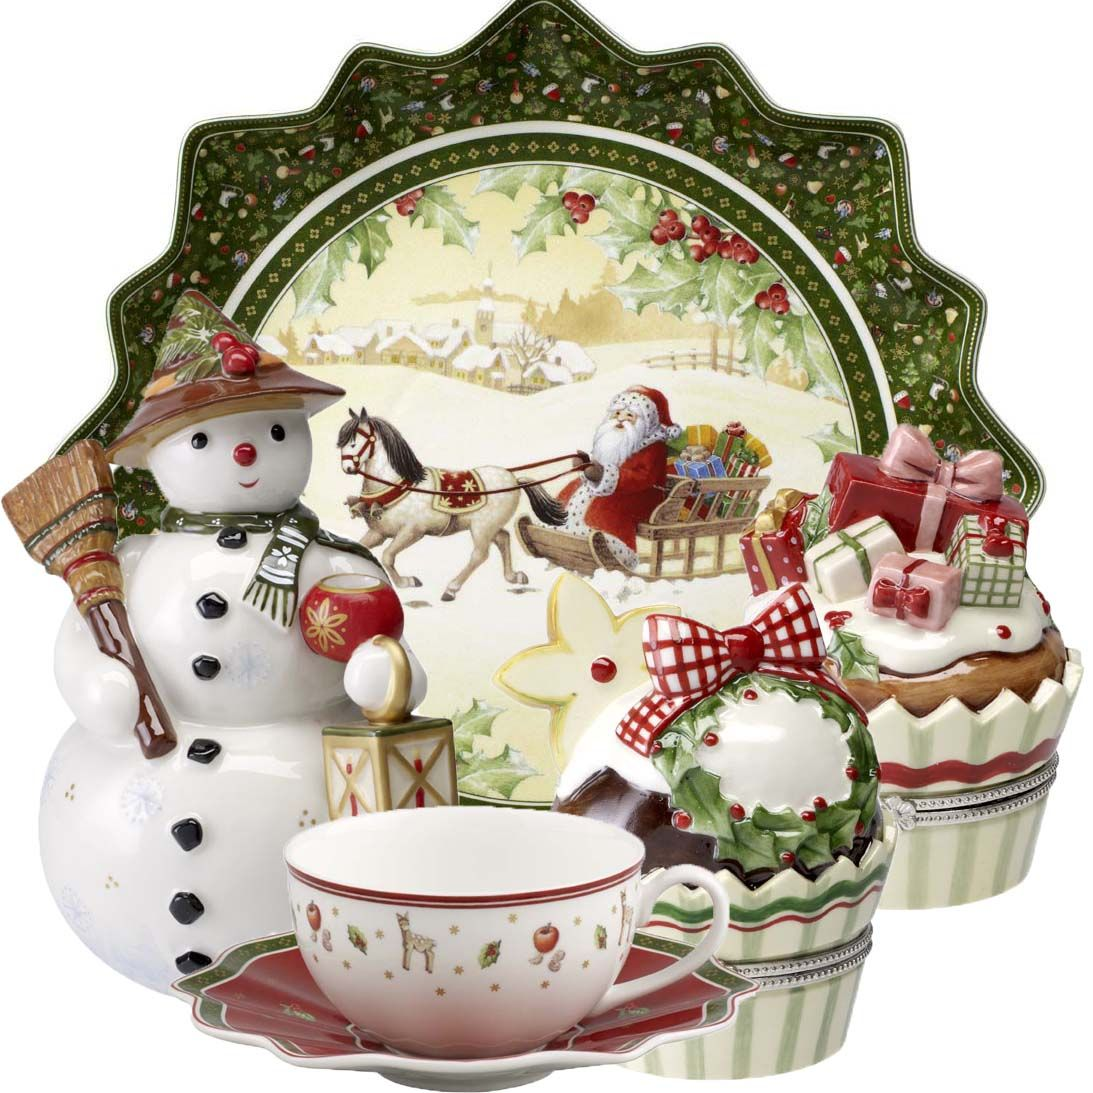 image detail for christmas from villeroy boch vaisselle de no l christmas dinnerware. Black Bedroom Furniture Sets. Home Design Ideas